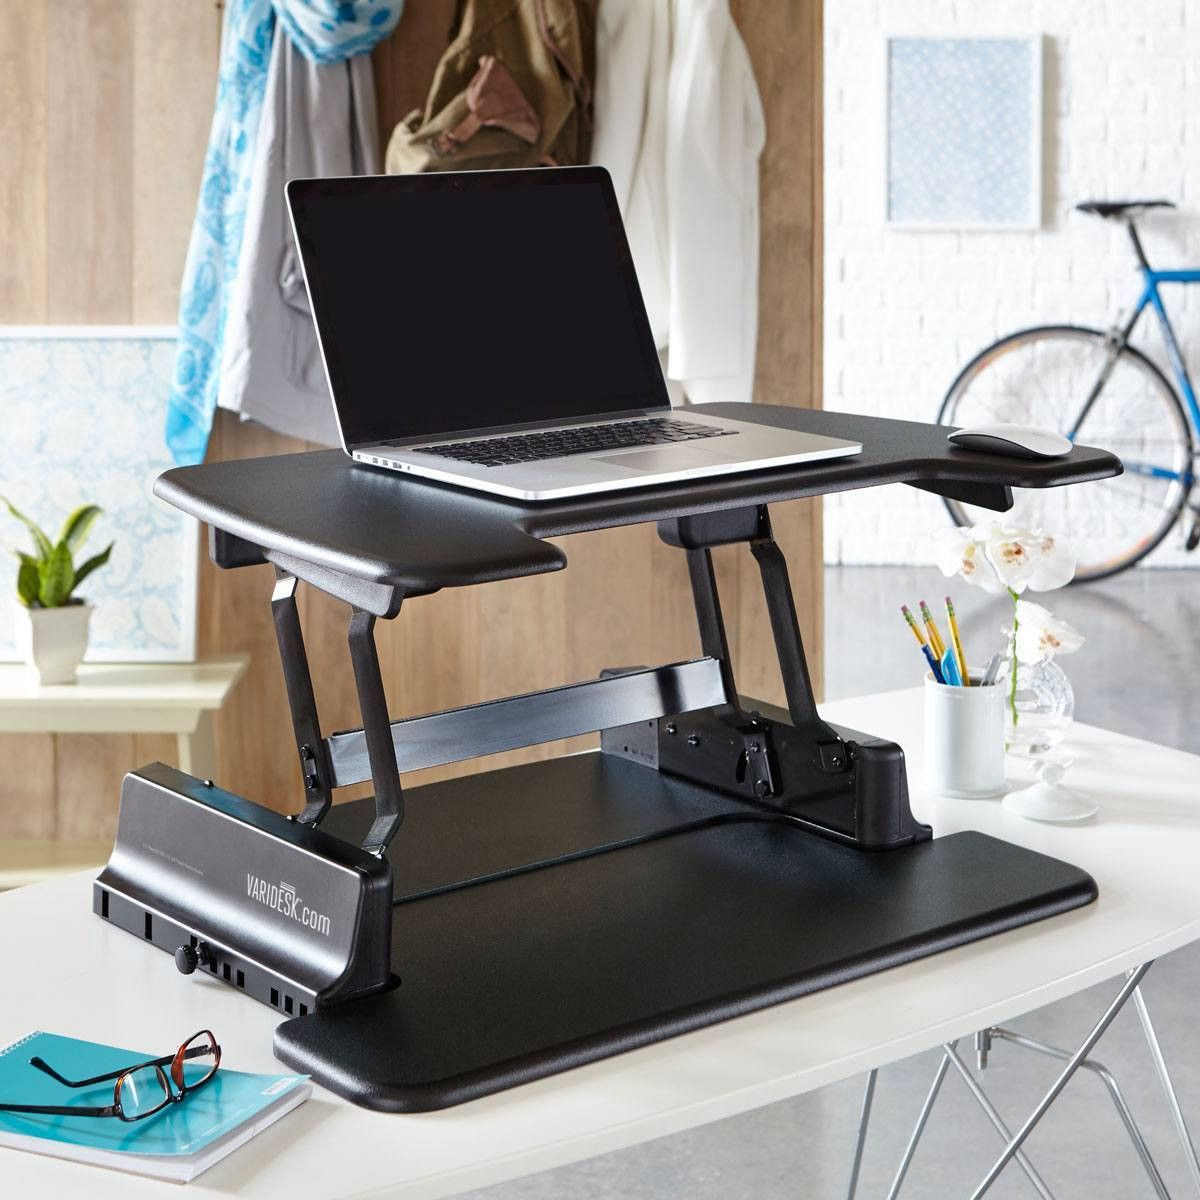 Adjustable Height Desk Pro Laptop VARIDESK 2 Office Pinterest